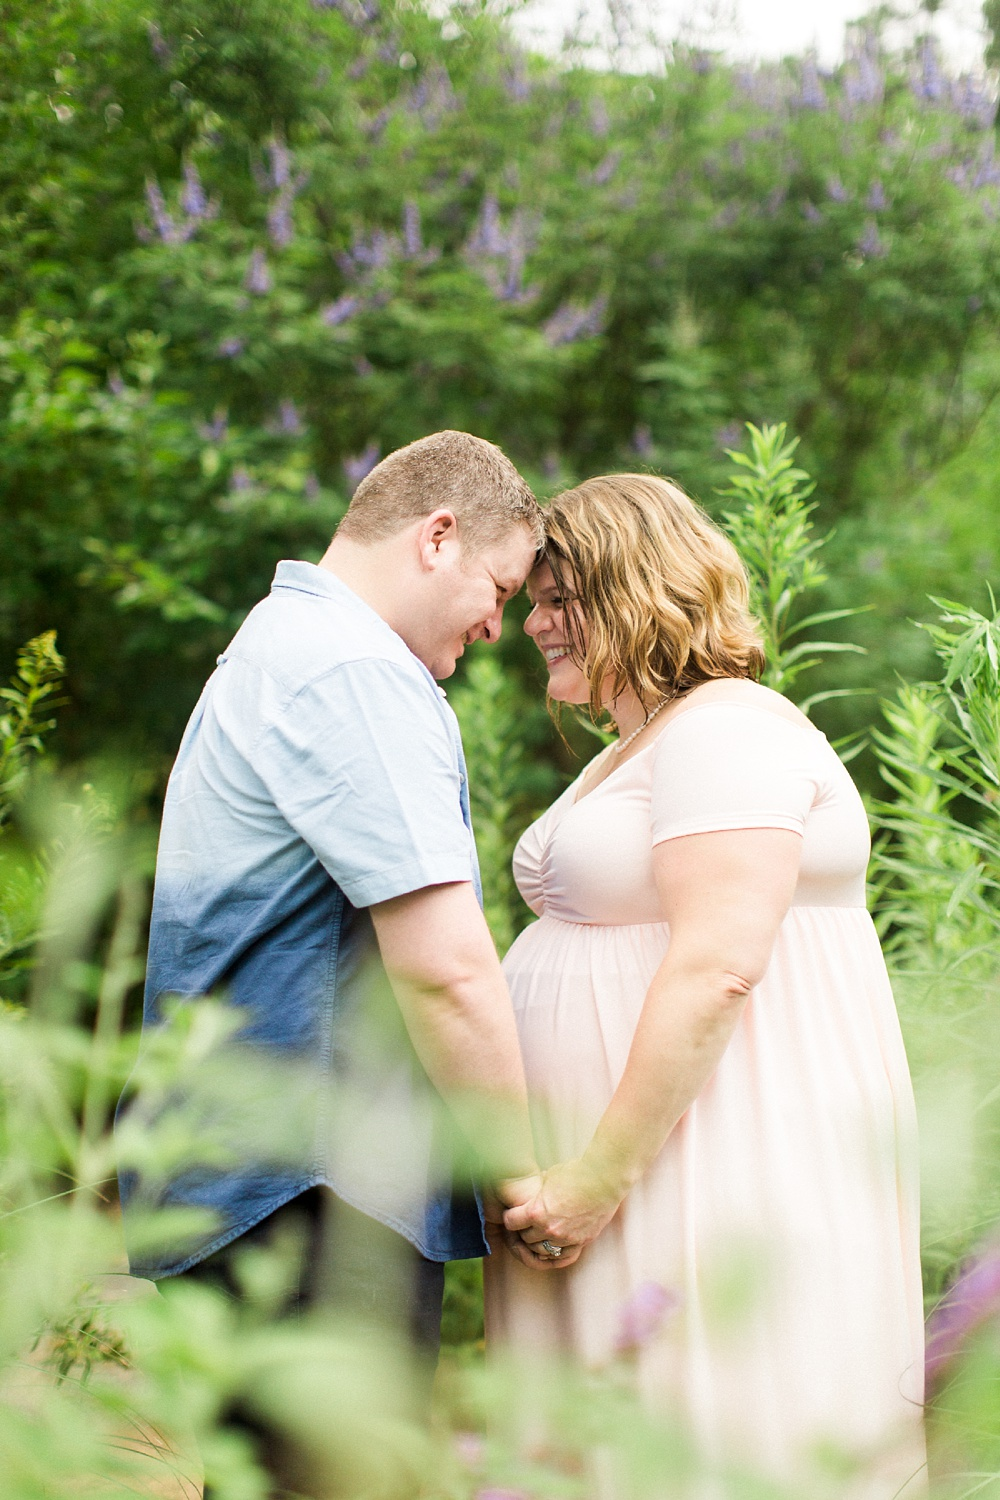 husband and wife touch foreheads in a garden